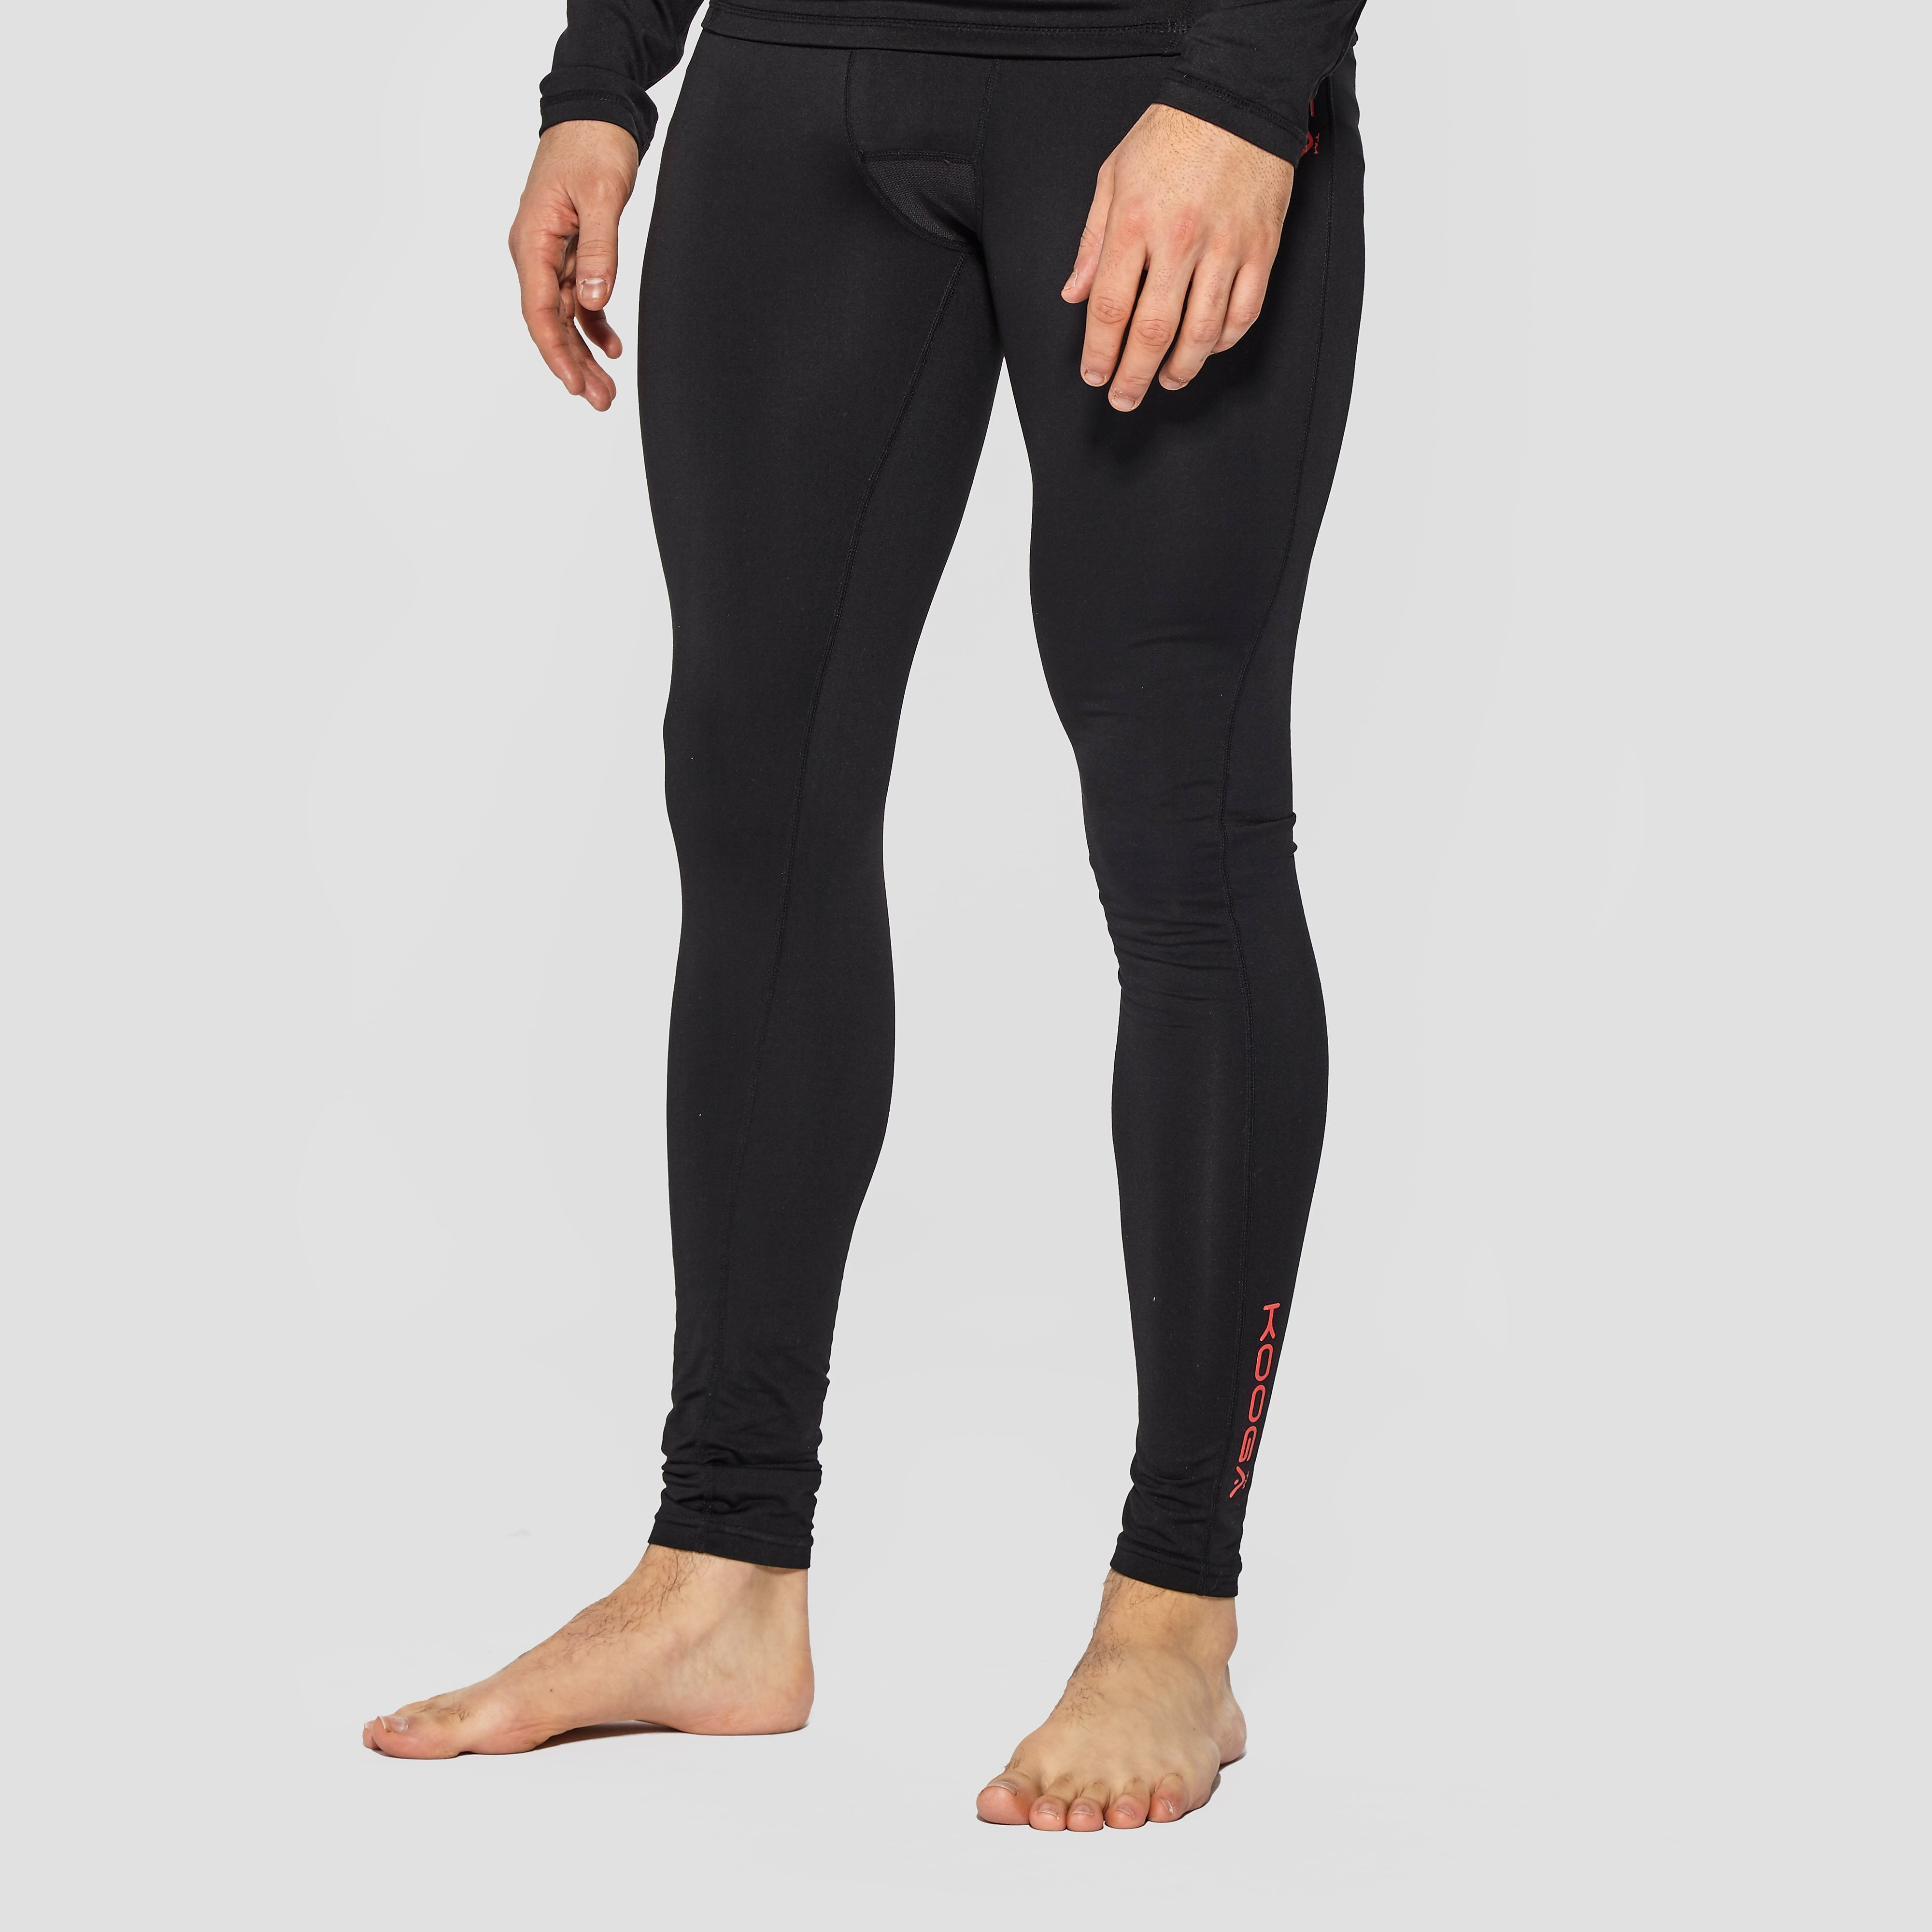 KooGa Elite Base Layer Men's Pants